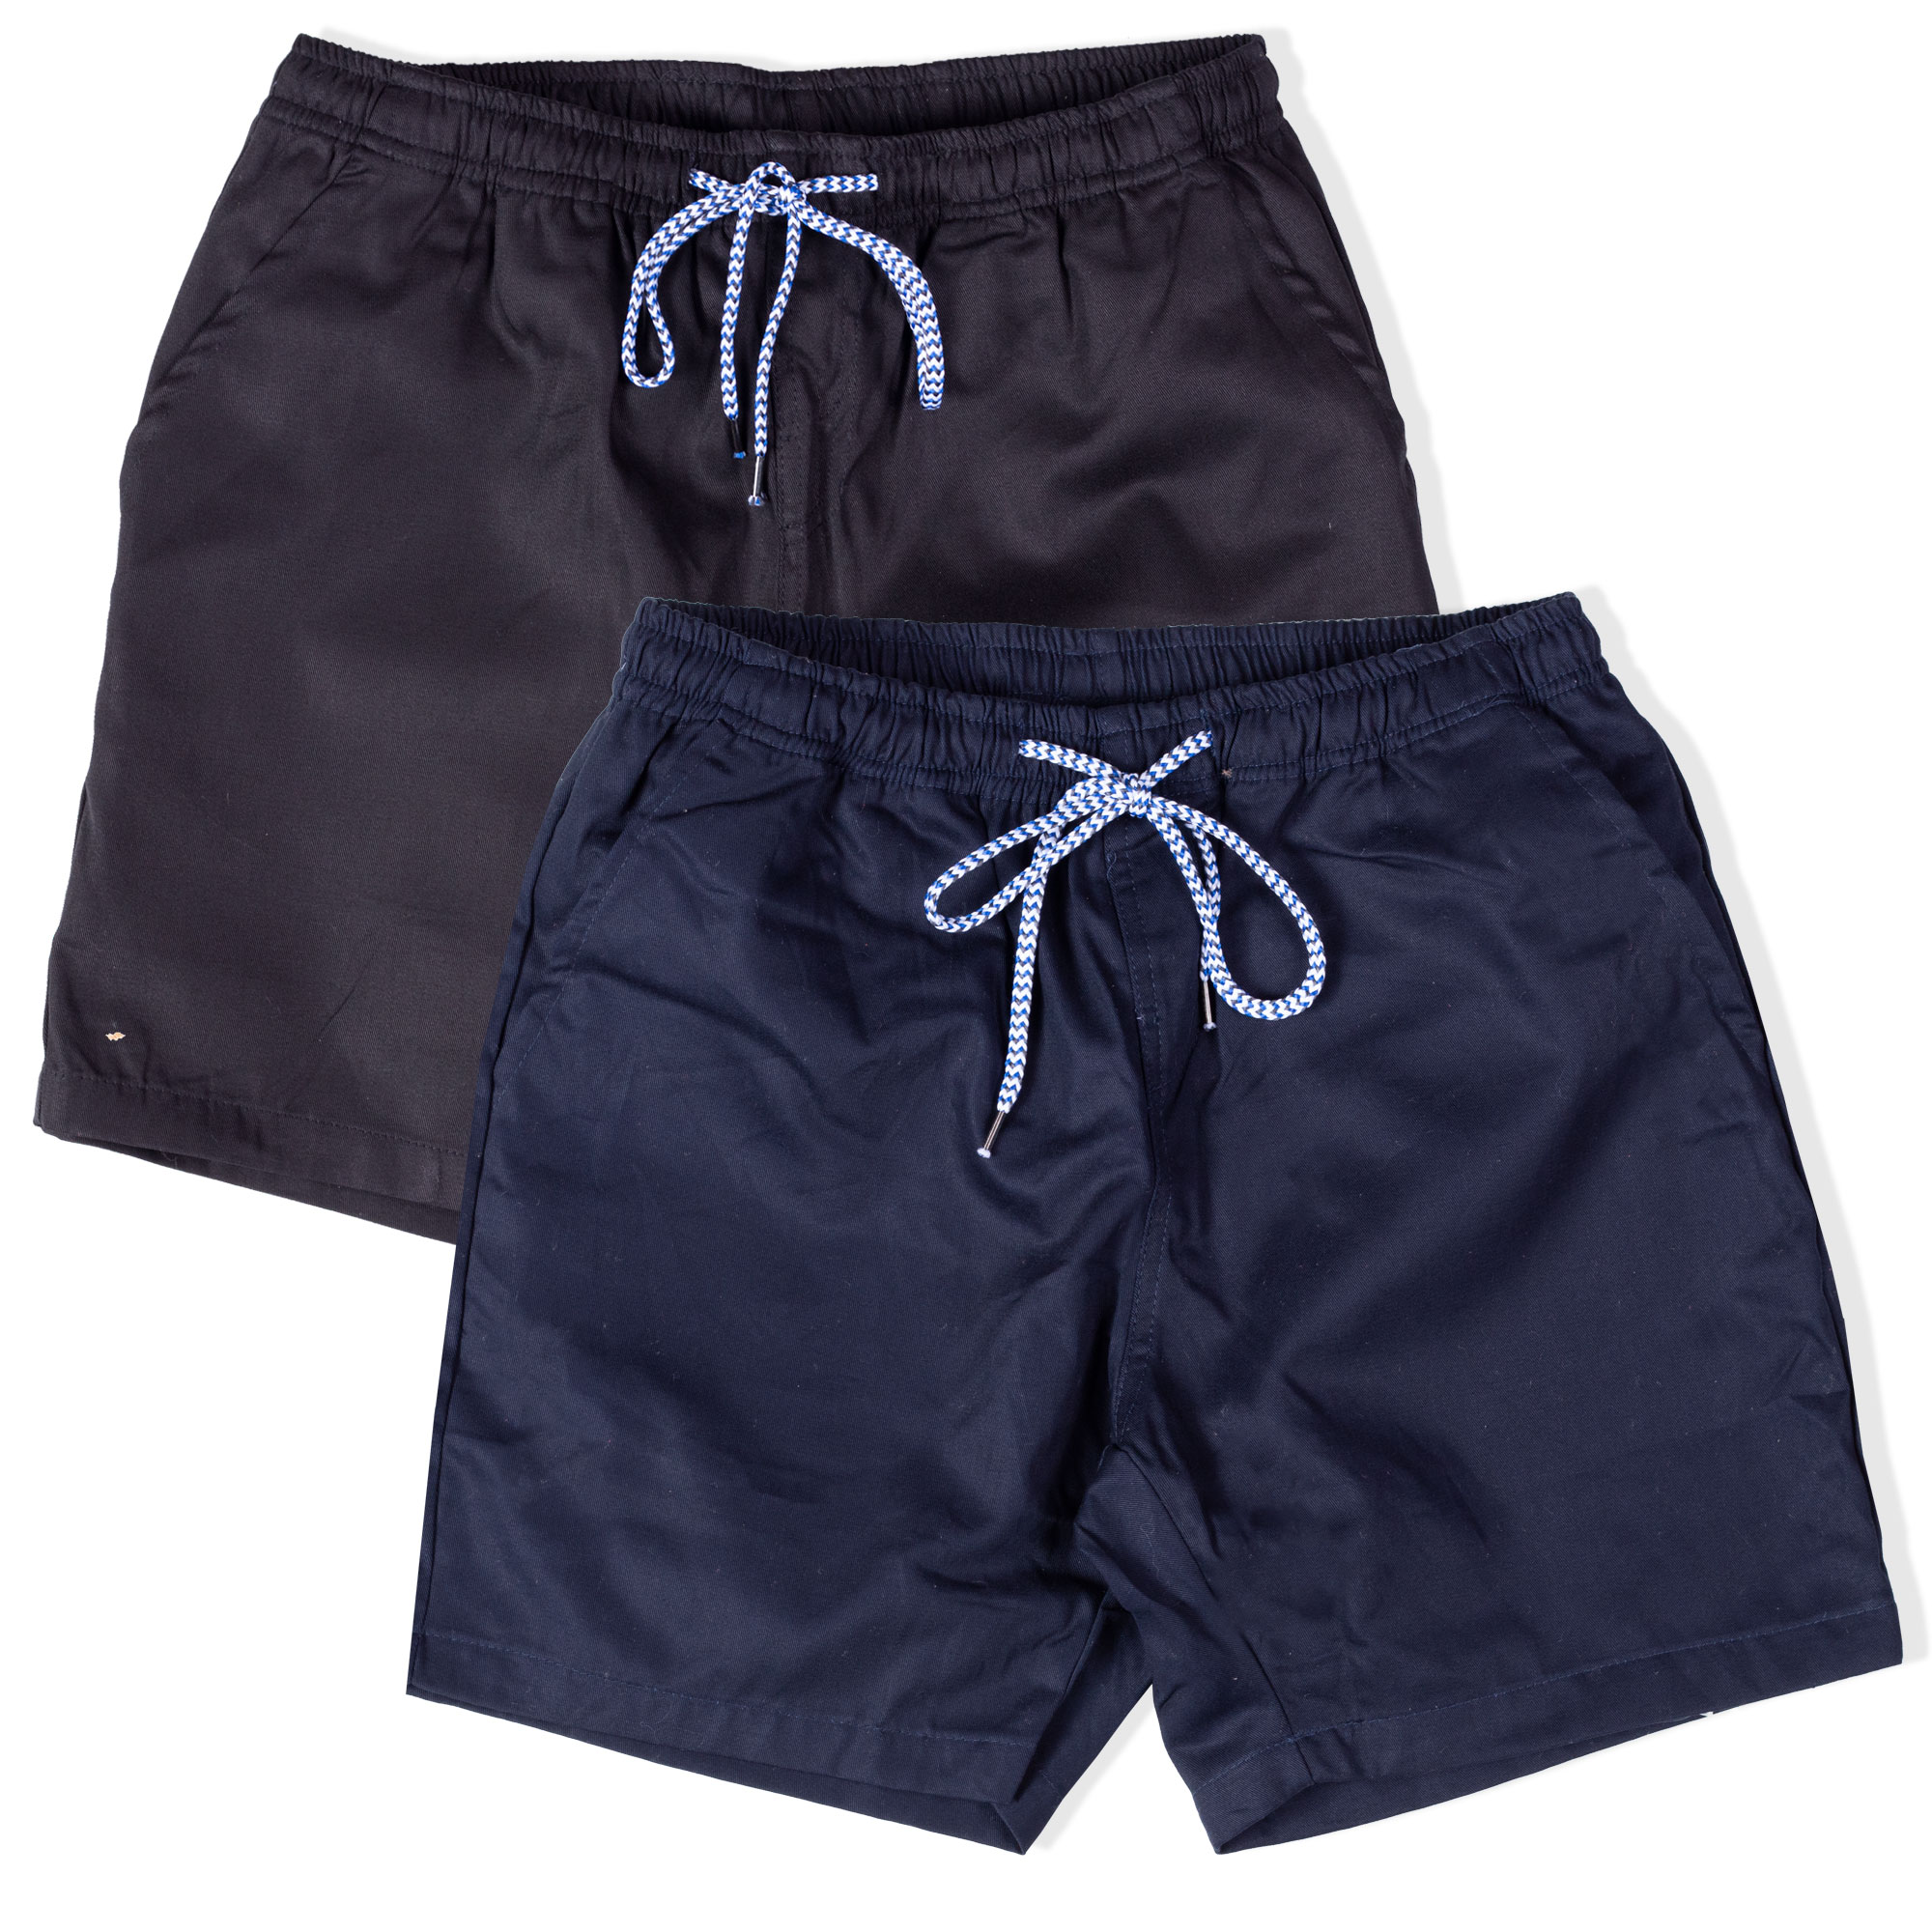 The Sell Highs Men/'s Chubbies Casual Shorts